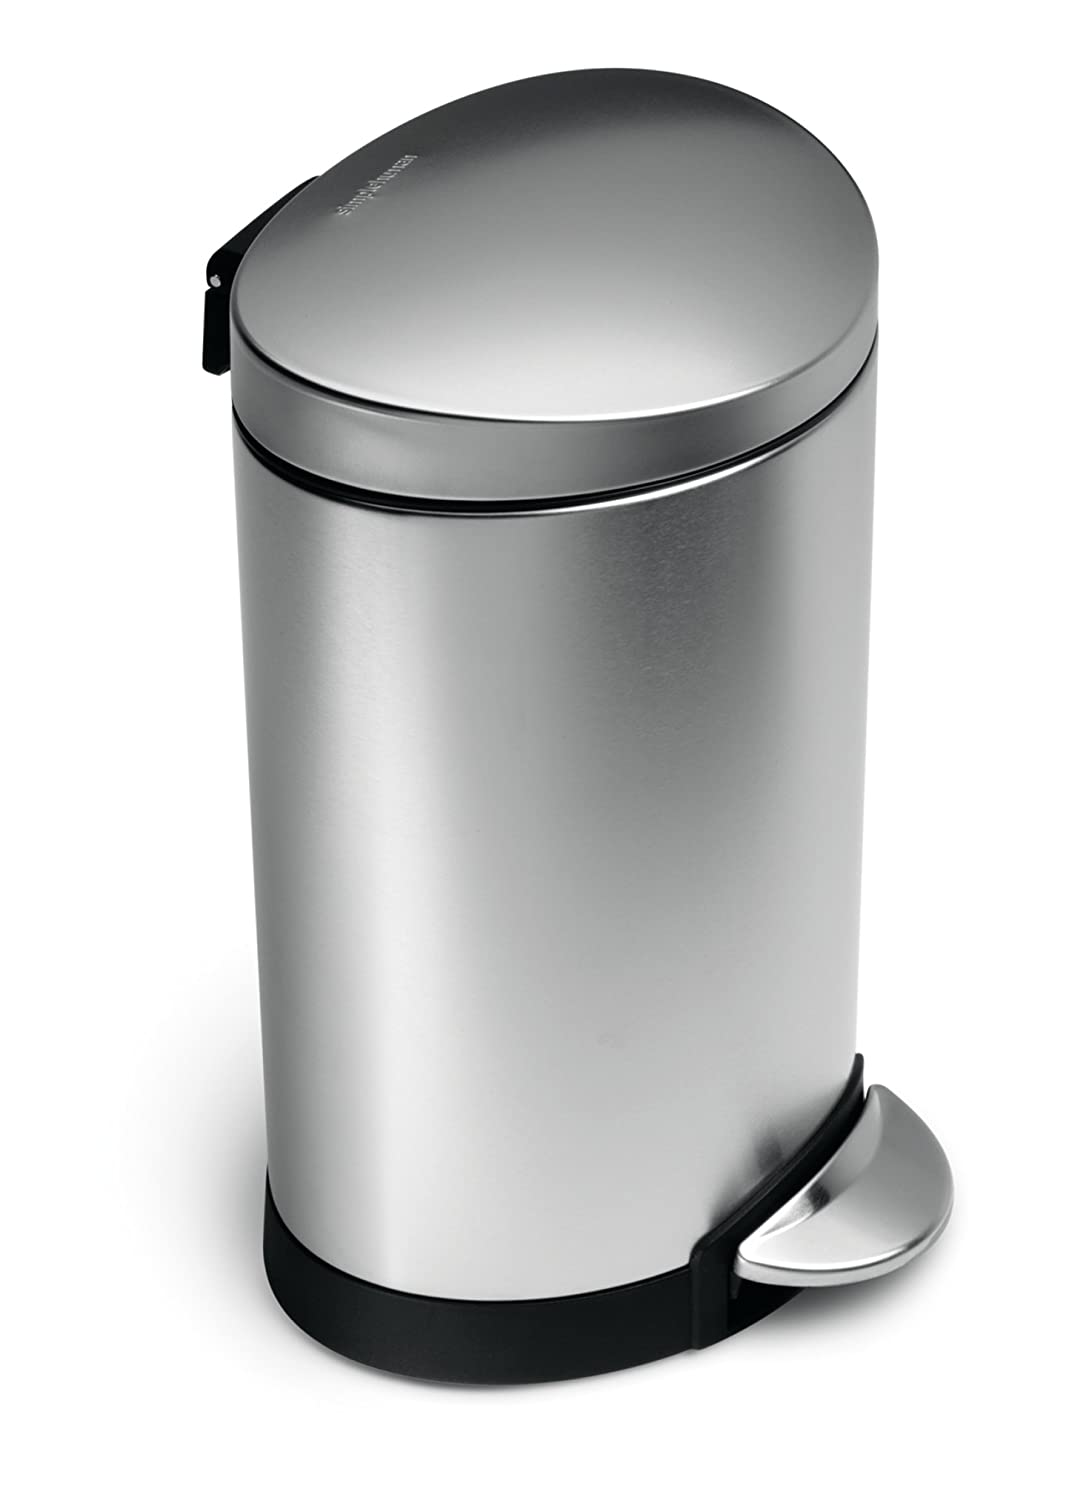 Stainless Steel Kitchen Trash Can Garbage Waste Bin Pedal Lid Step Operated New Ebay